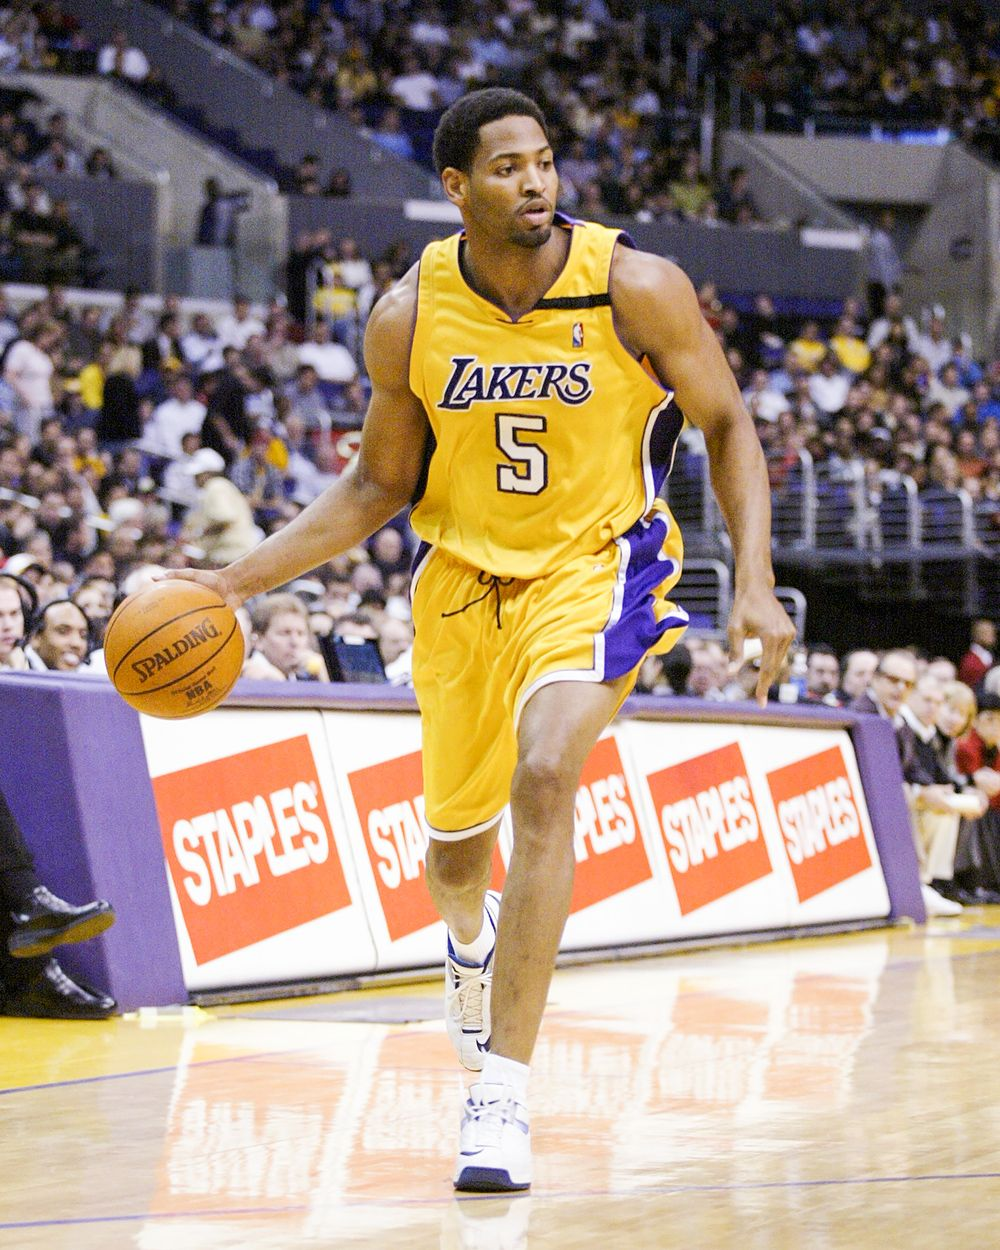 All Time Los Angeles Lakers Los Angeles Lakers Robert Horry Lakers Kobe Bryant